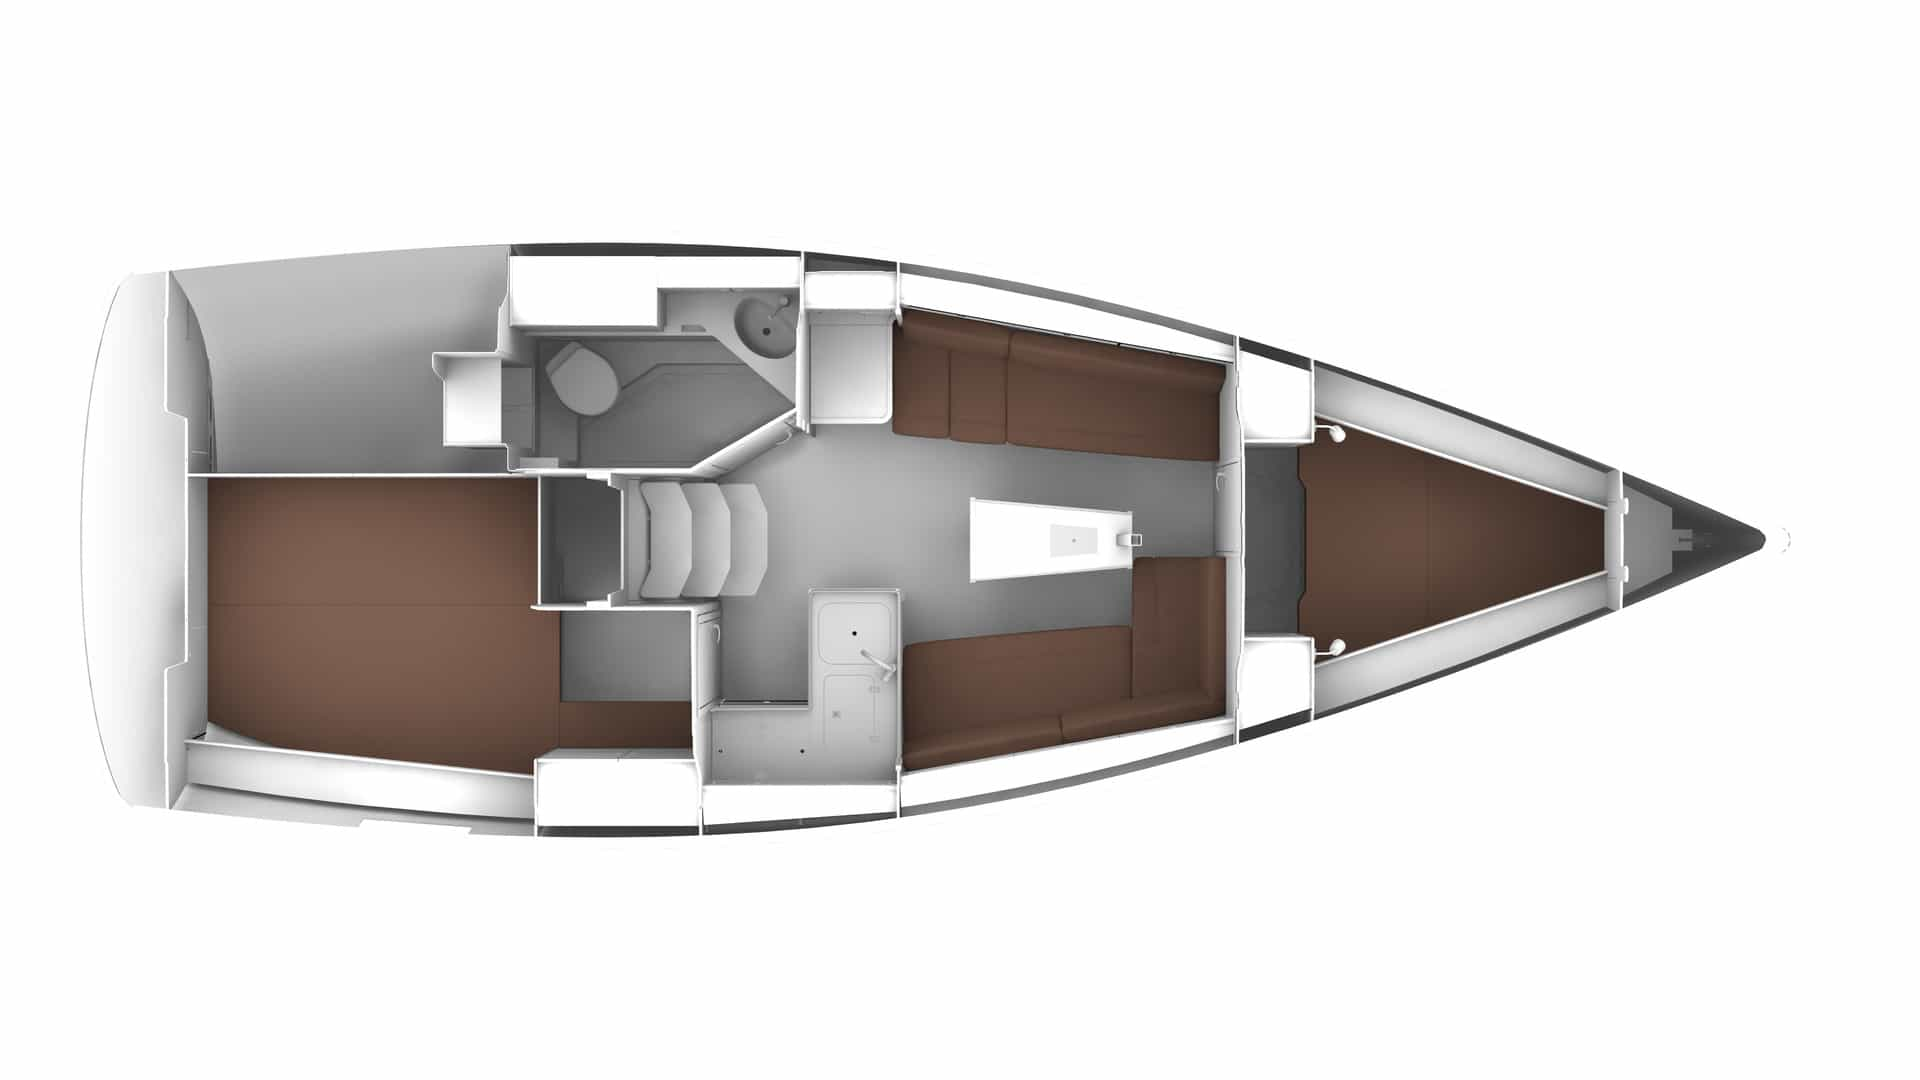 Bavaria Cruiser 34 layout